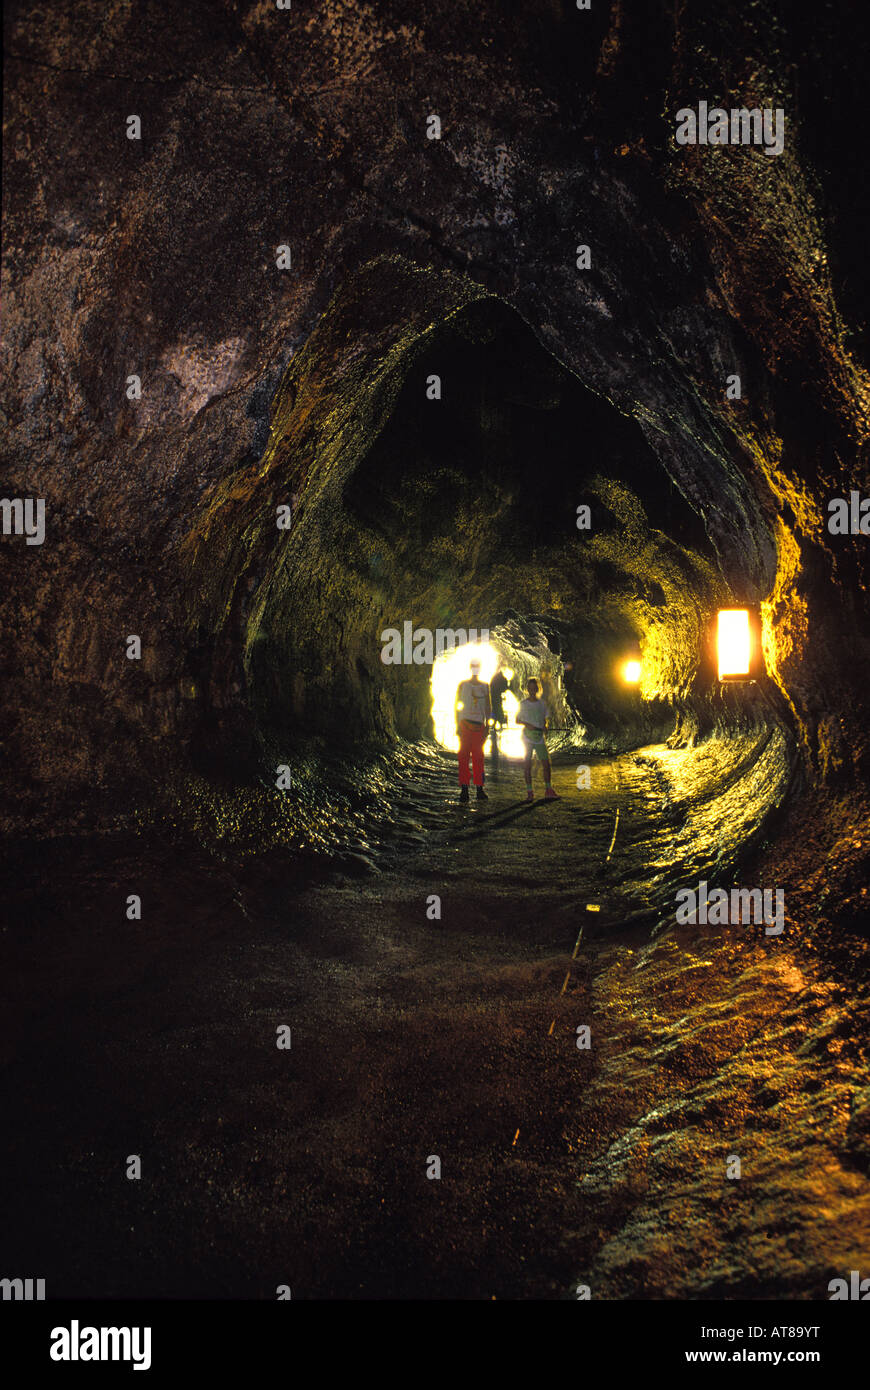 People exploring the interior of the Thurston lava tube at the Hawaii national volcano park Stock Photo